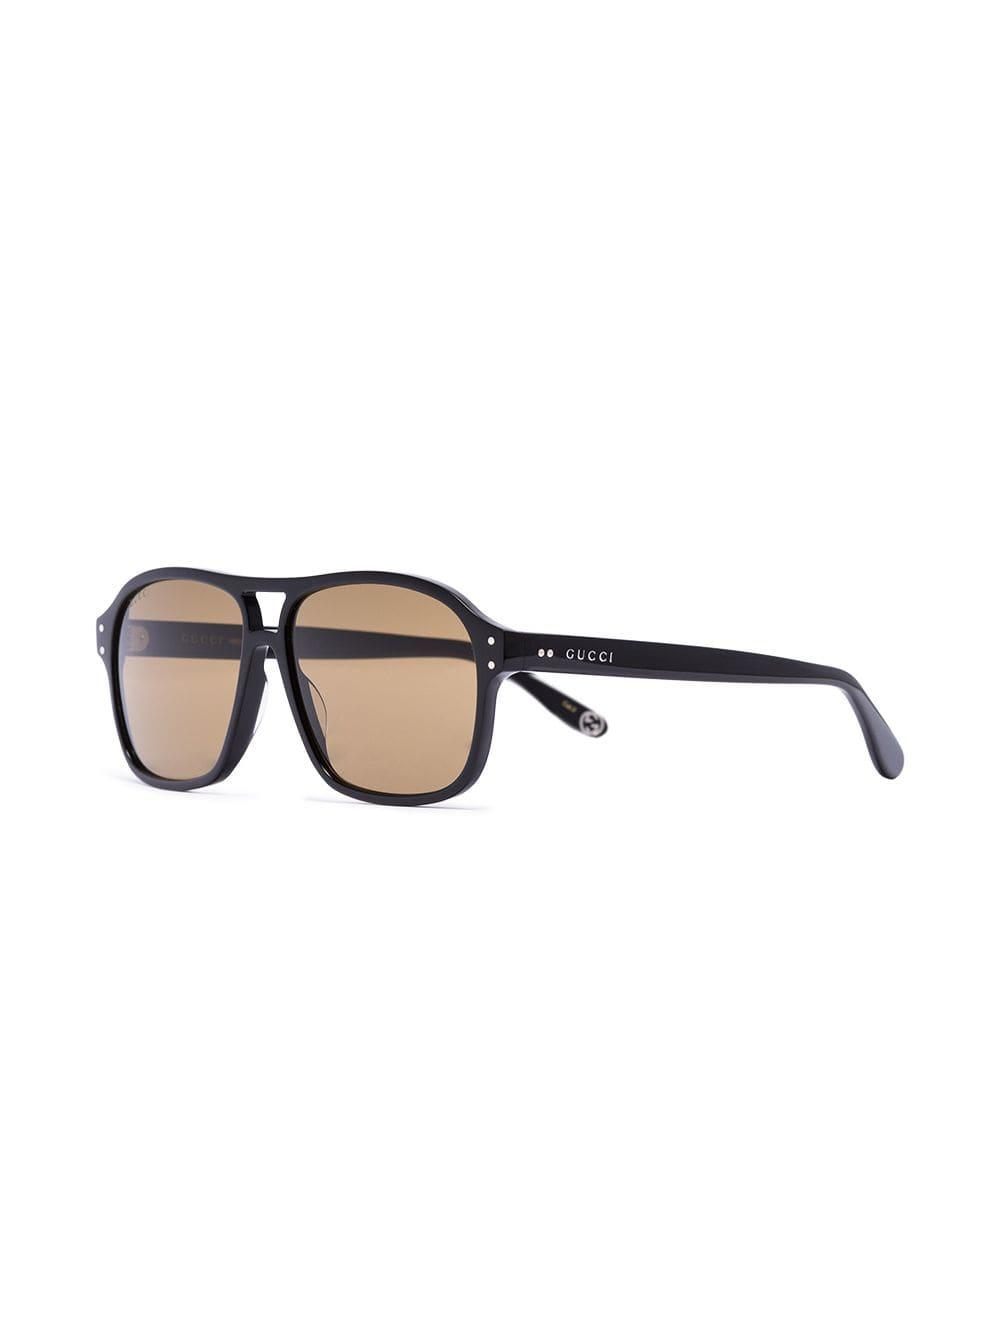 224541c3712f0 Lyst - Gucci Black Tinted Aviator Sunglasses in Black for Men